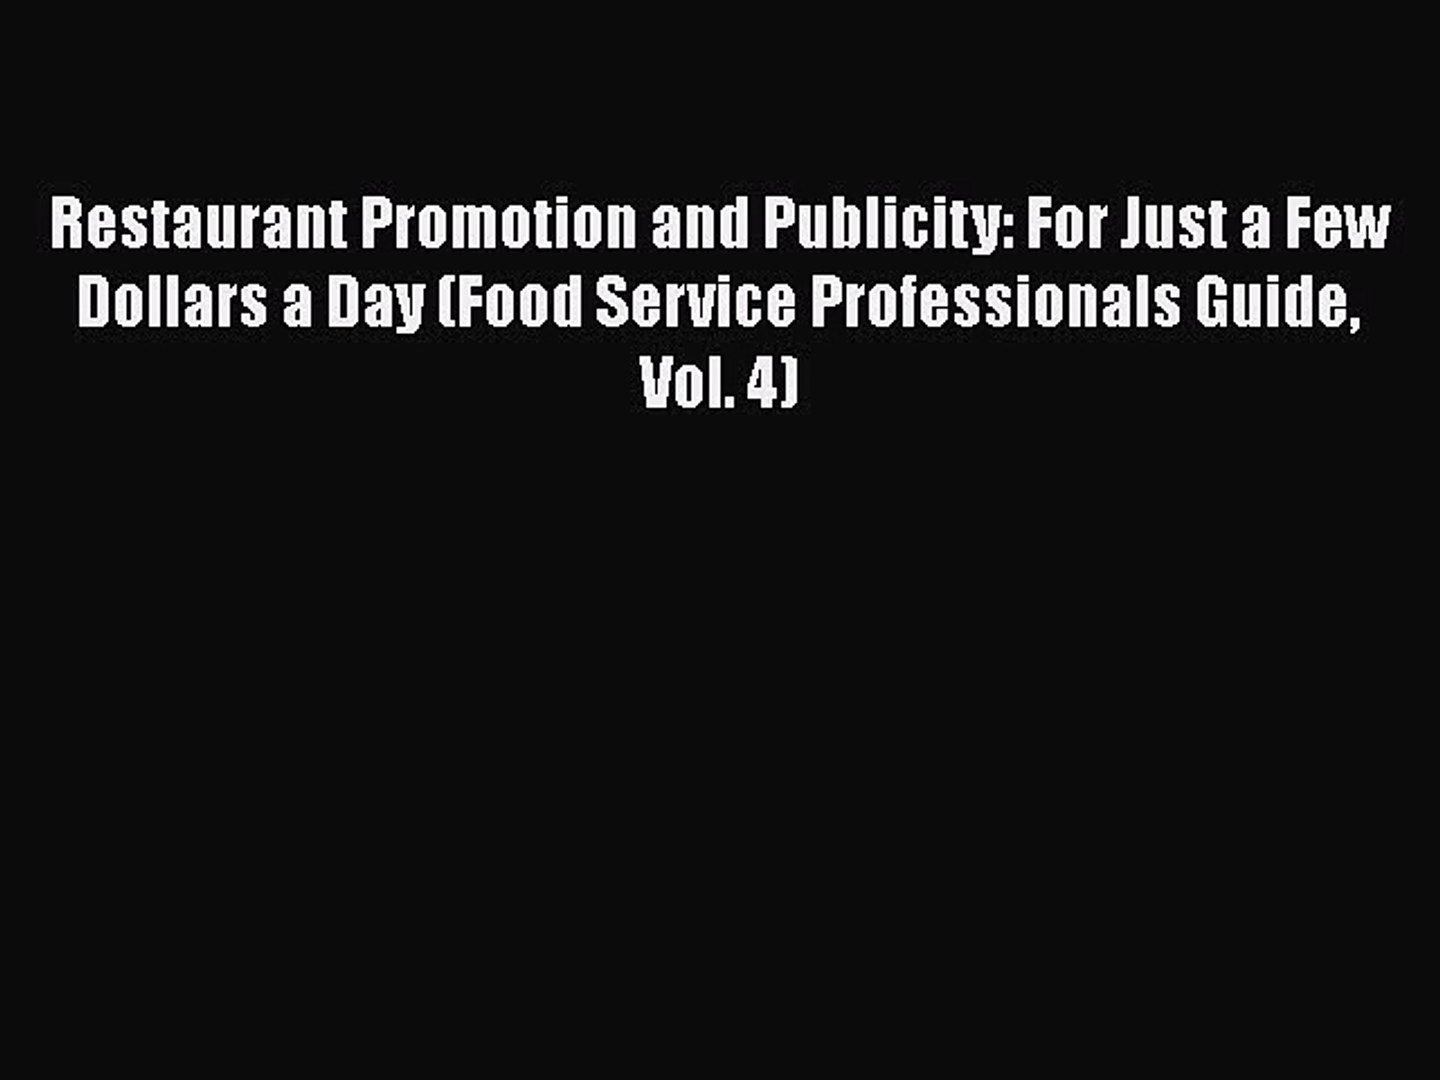 [Read book] Restaurant Promotion and Publicity: For Just a Few Dollars a Day (Food Service